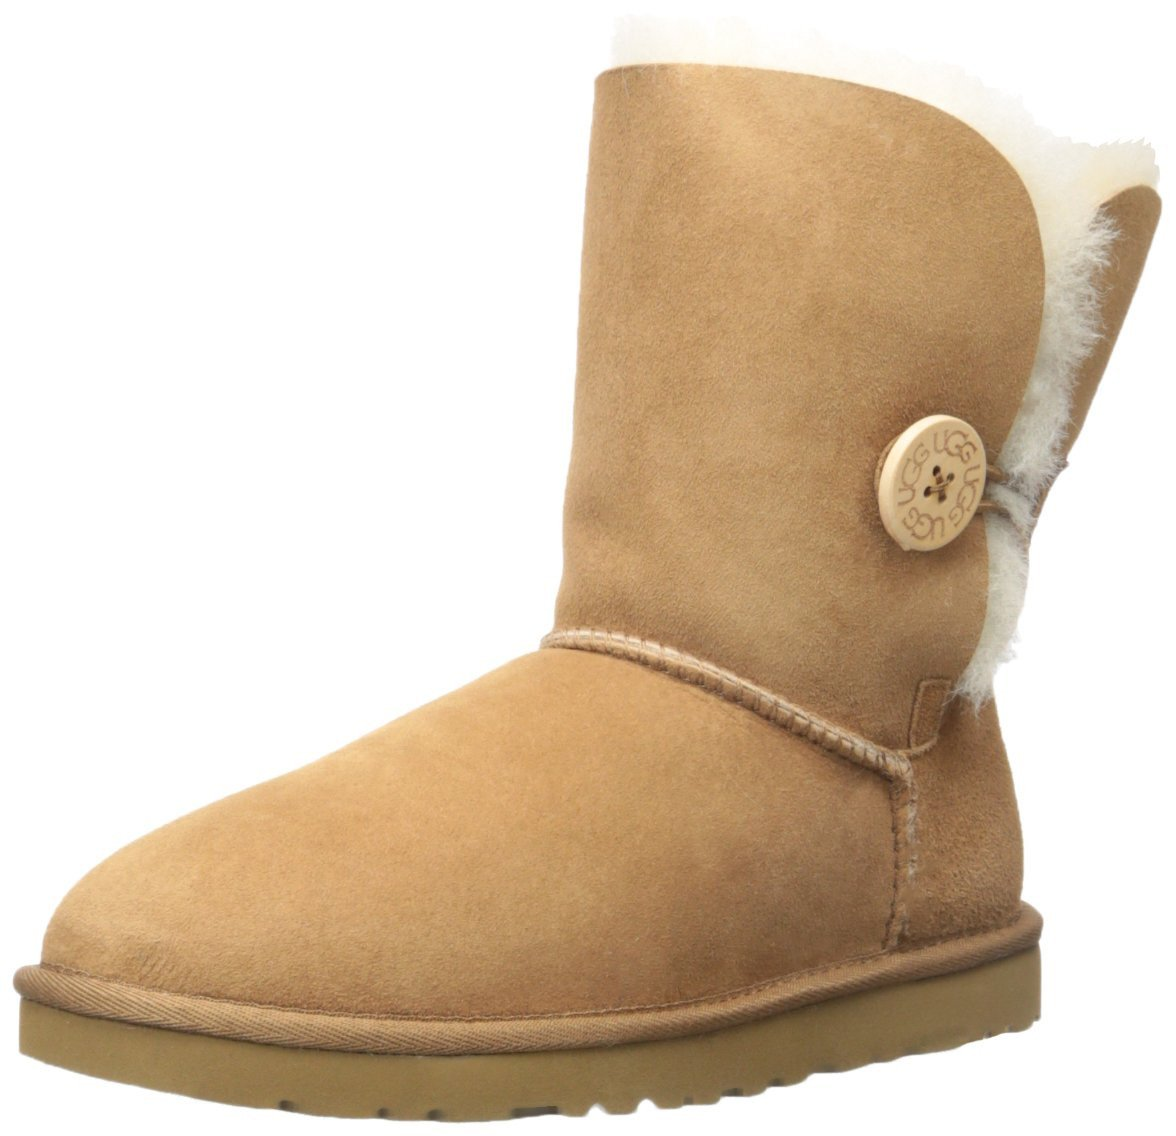 Ugg Australia Bailey Button Grey Women's Winter Boots 580...